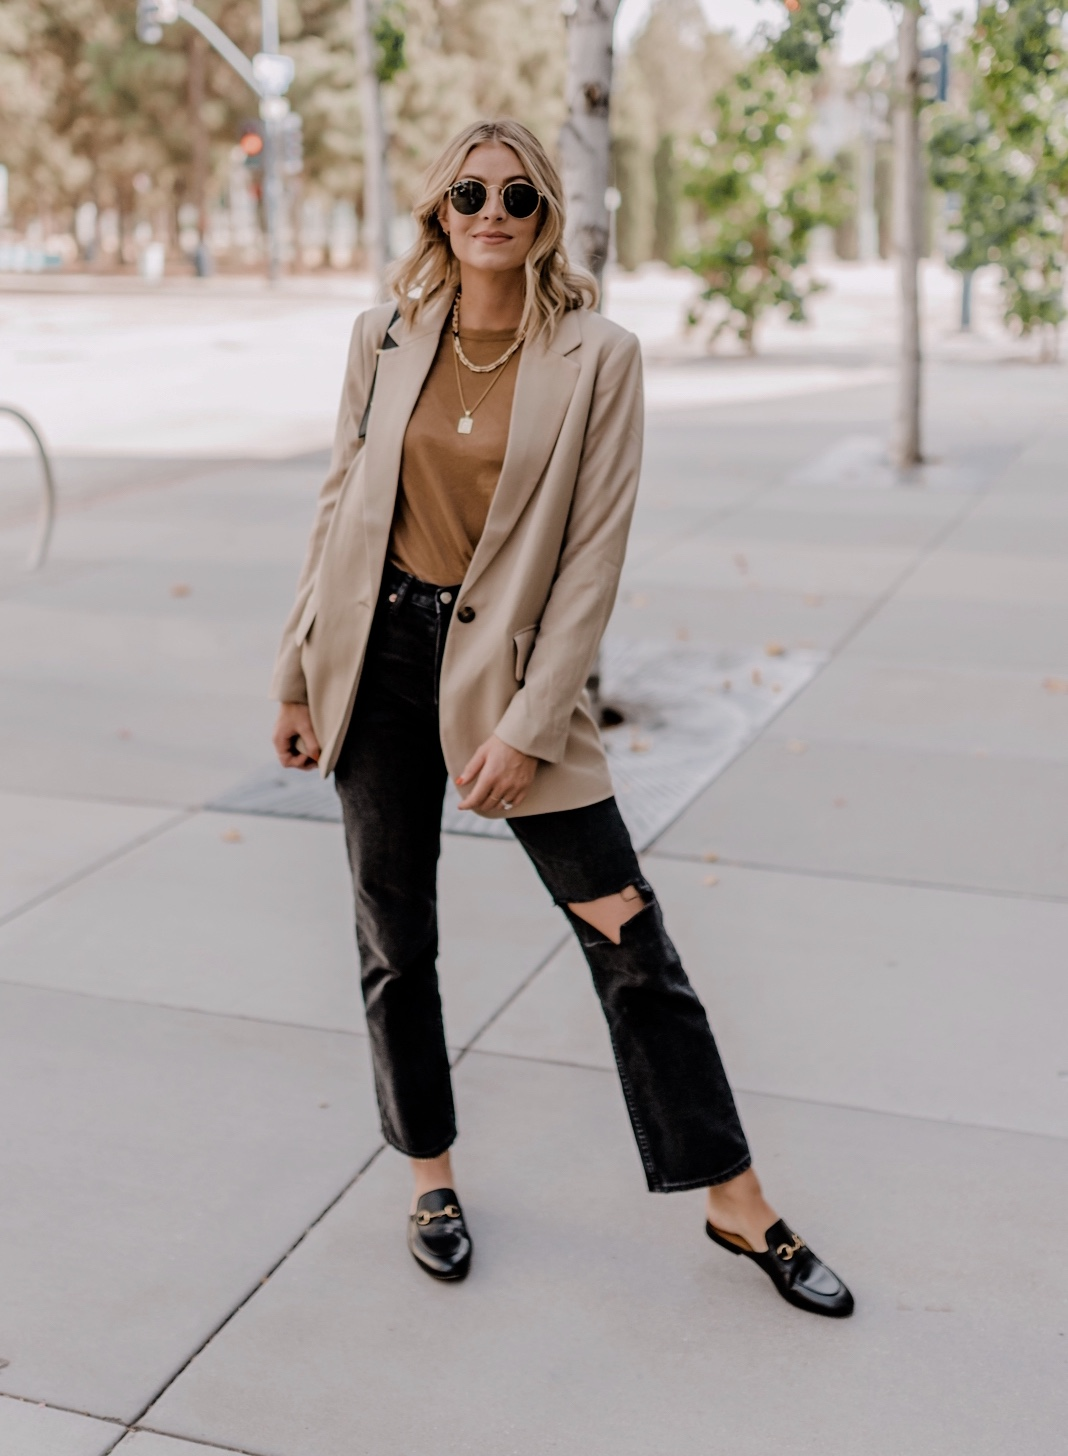 Top Looks of 2020 |Top Looks by San Diego fashion blog, Navy Grace: image of a woman wearing a tan blazer, brown shirt, black distressed denim and black slide mules.